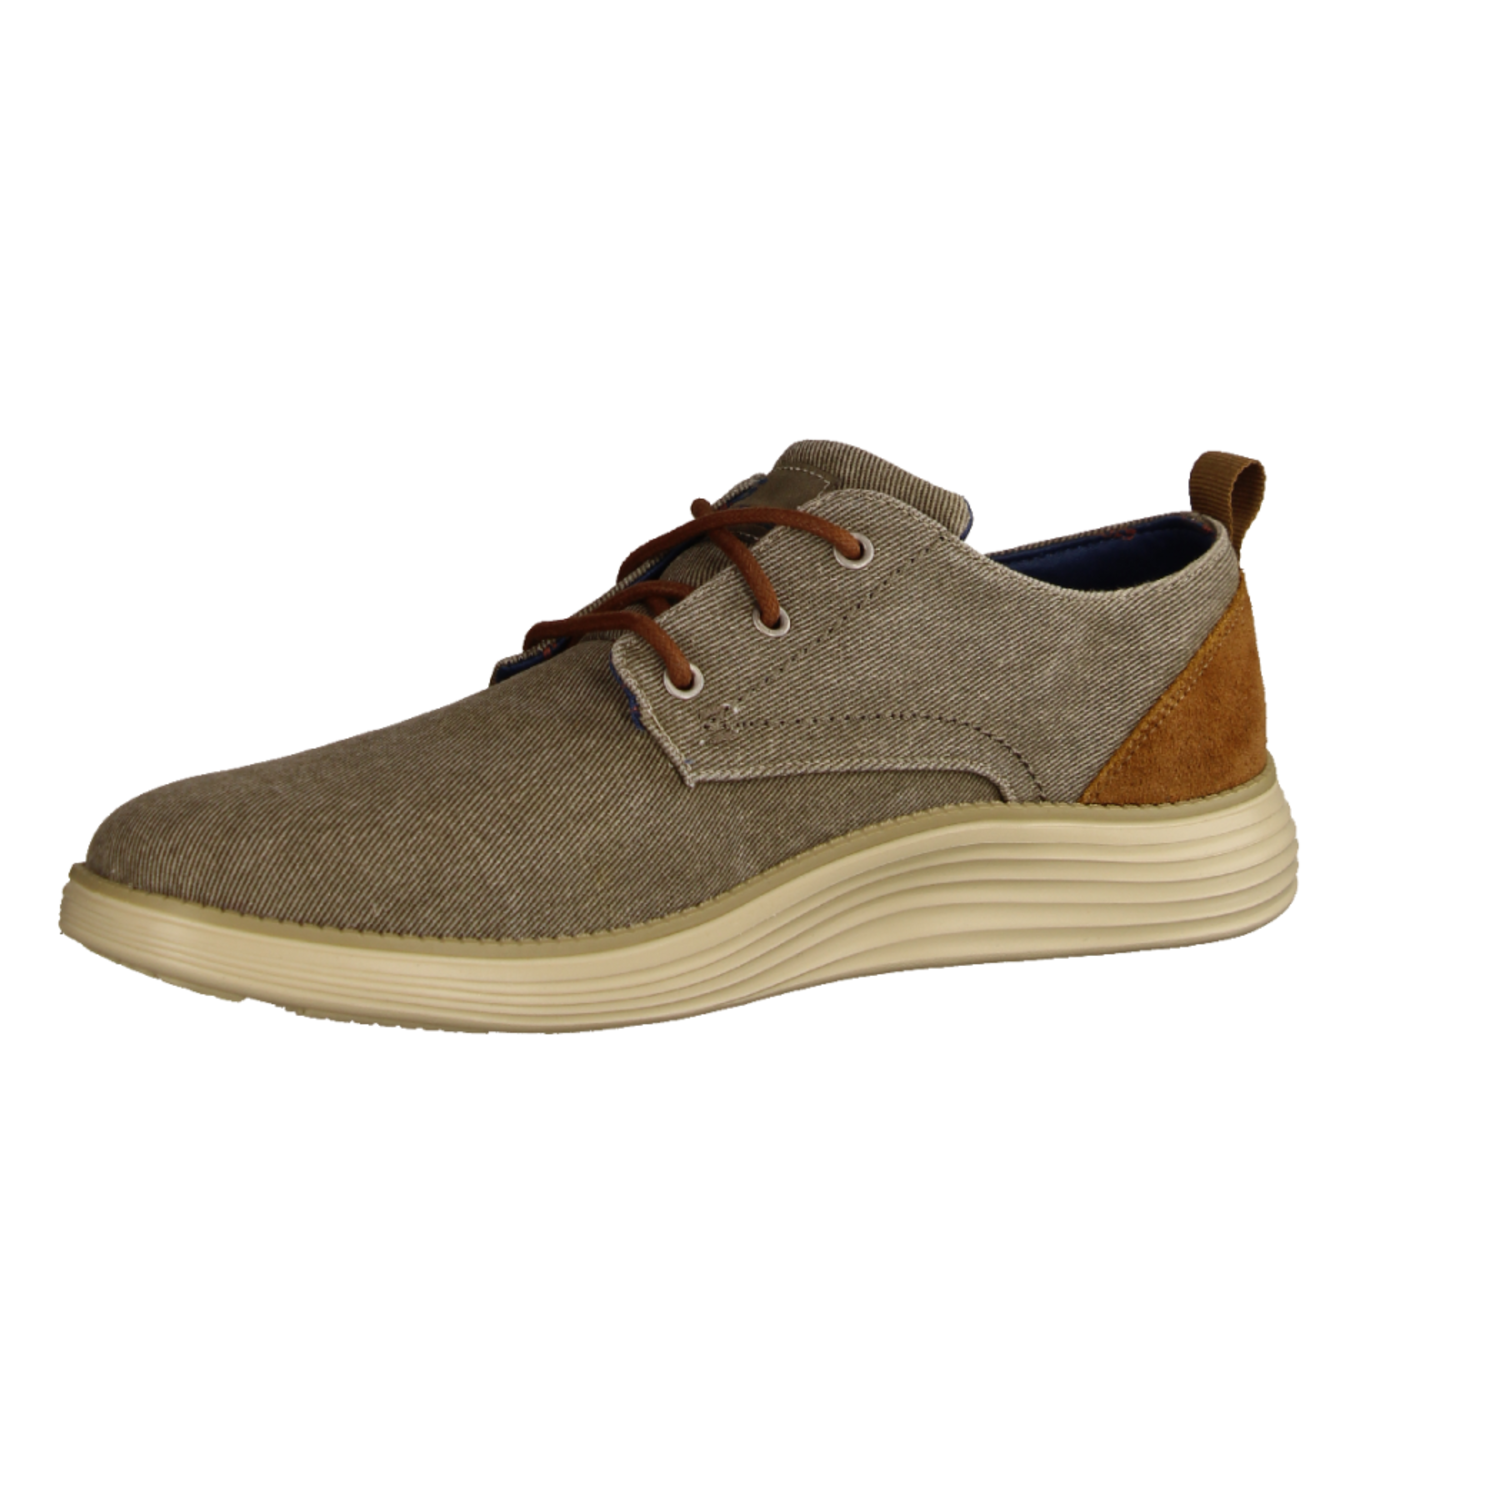 Triactive Knit Tan (beige)